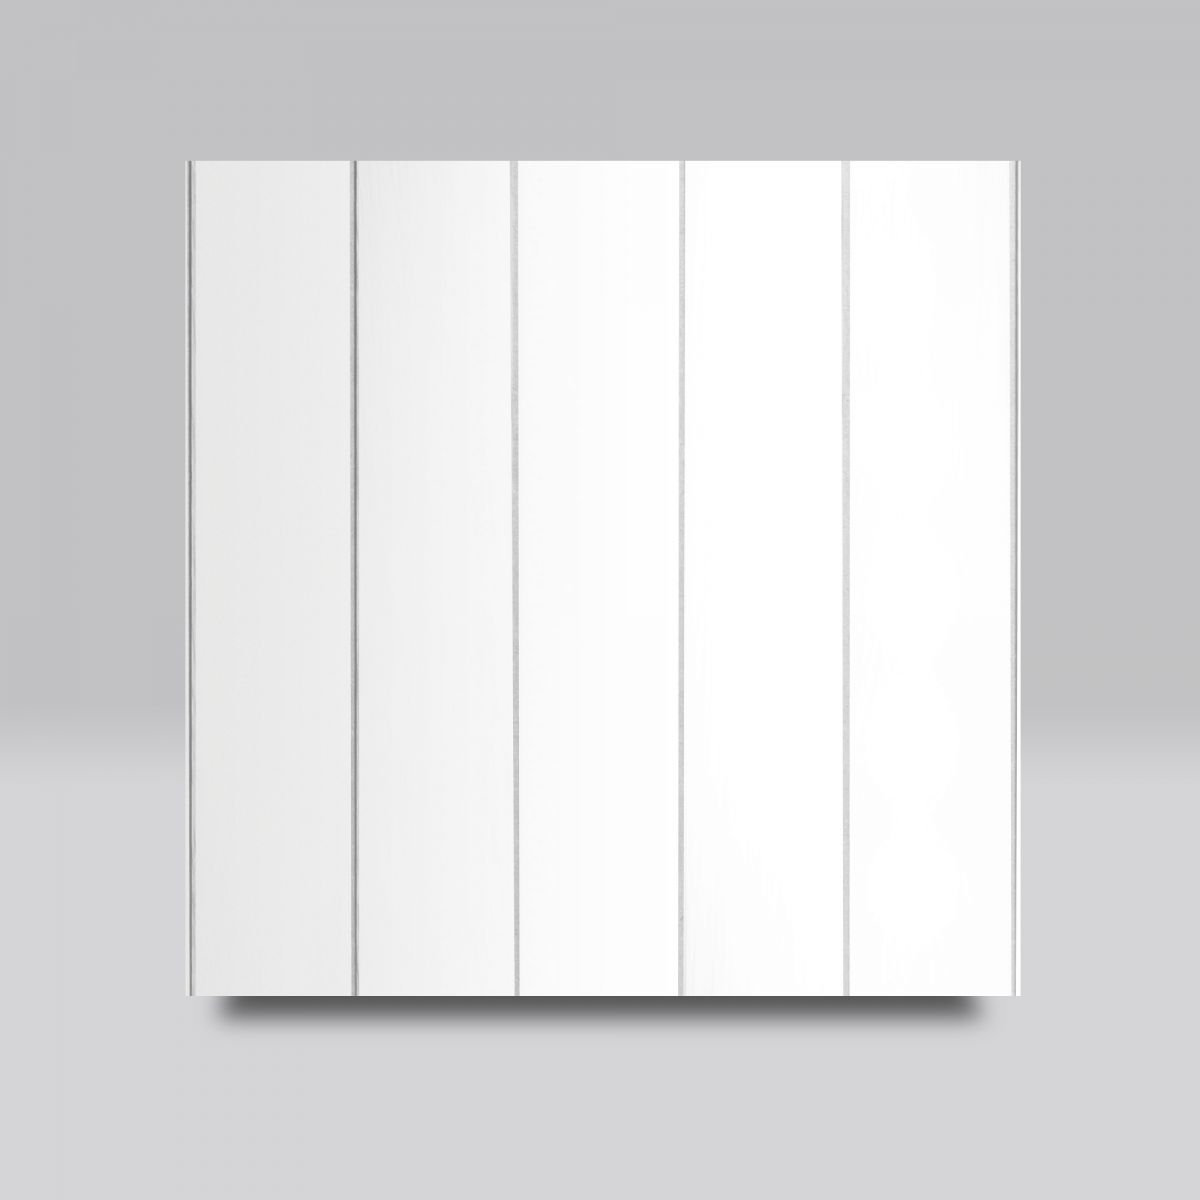 White paint with Vertical Grooves finish